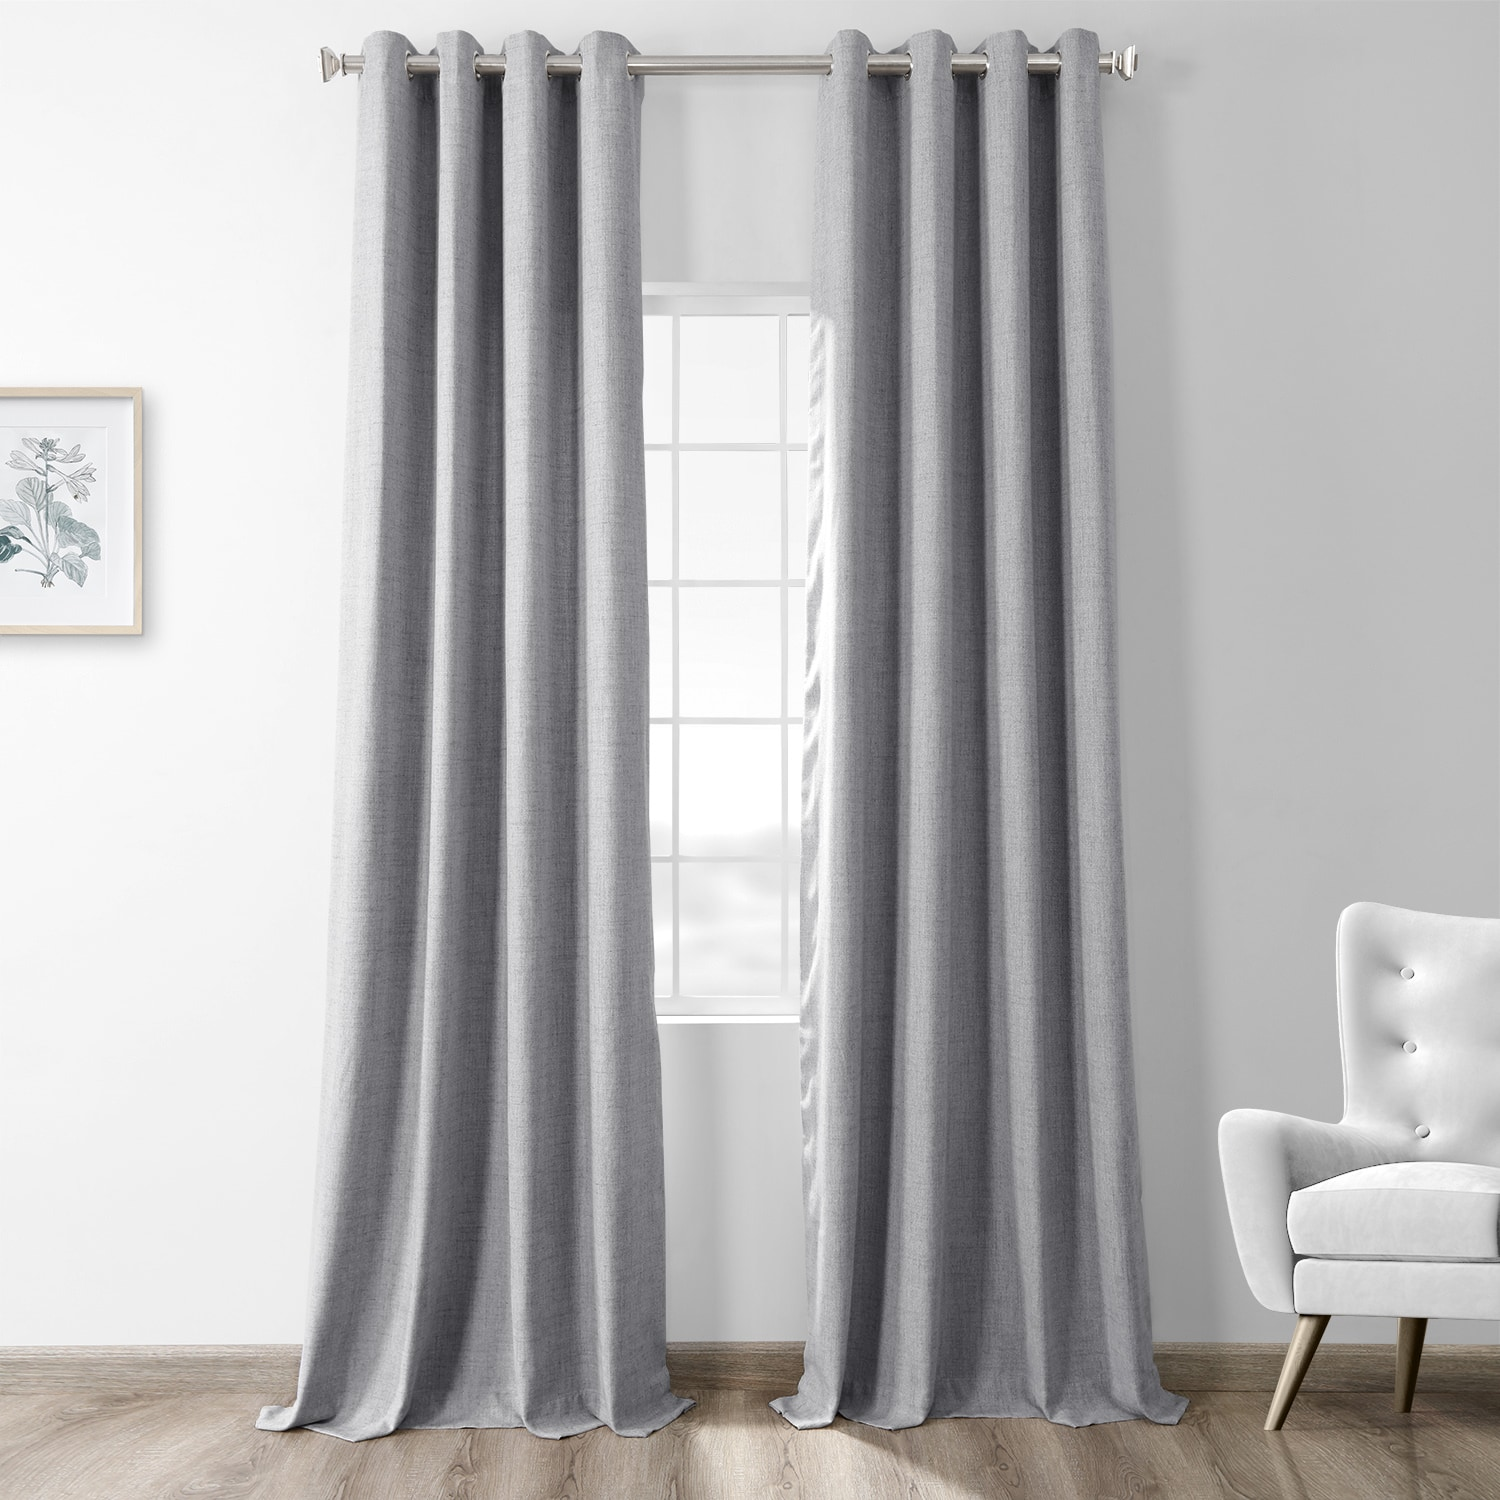 Steely Grey Thermal Room Darkening Heathered Italian Woolen Weave Grommet Curtain